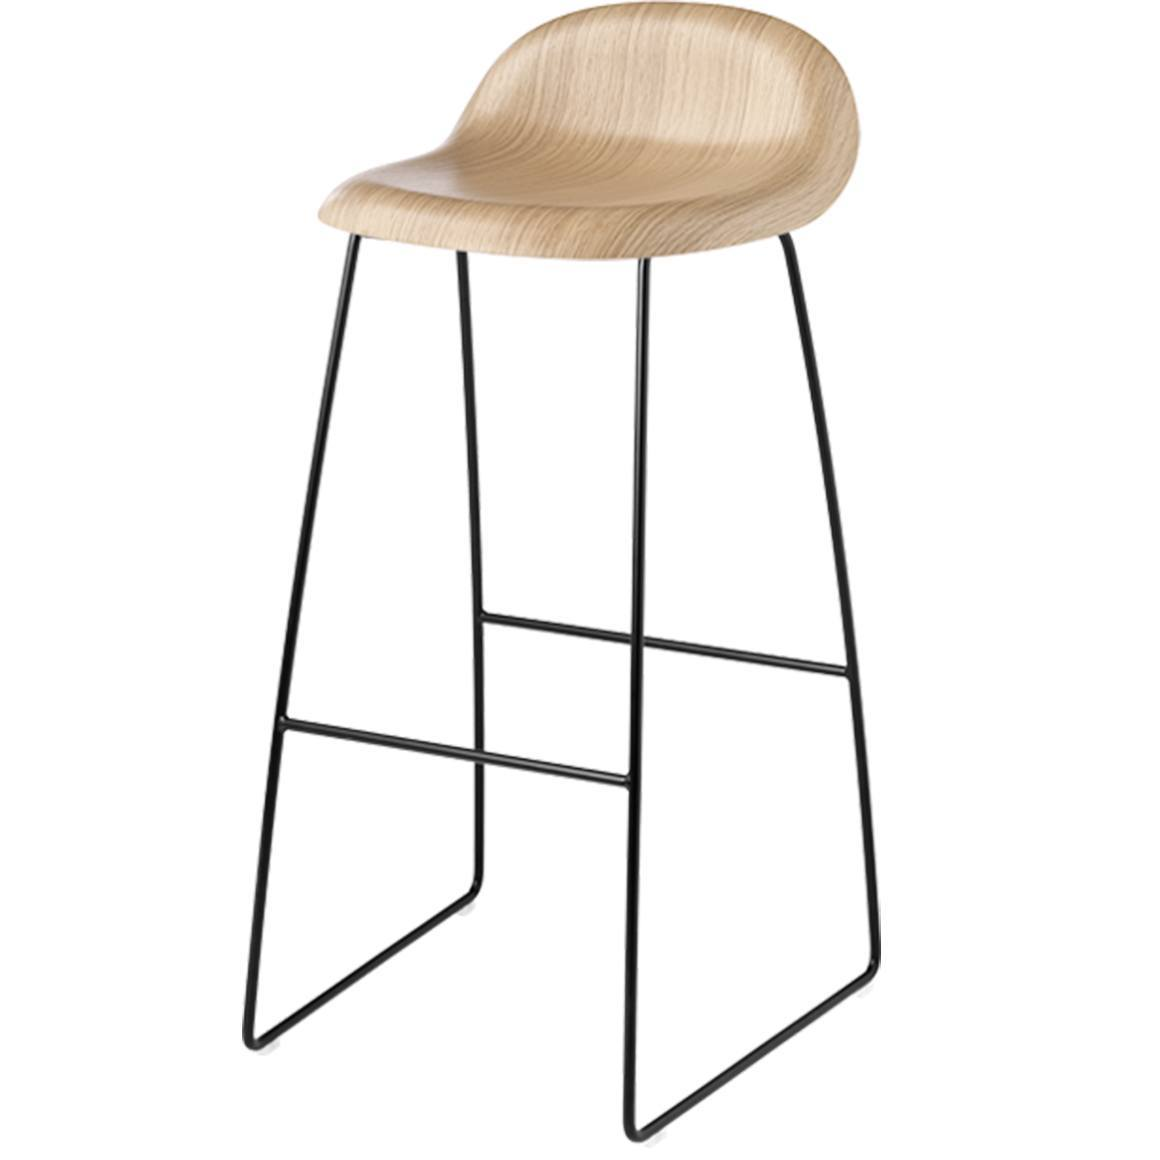 GUBI 3 STOOL-CHROME BASE - Eclectic Cool  - 9